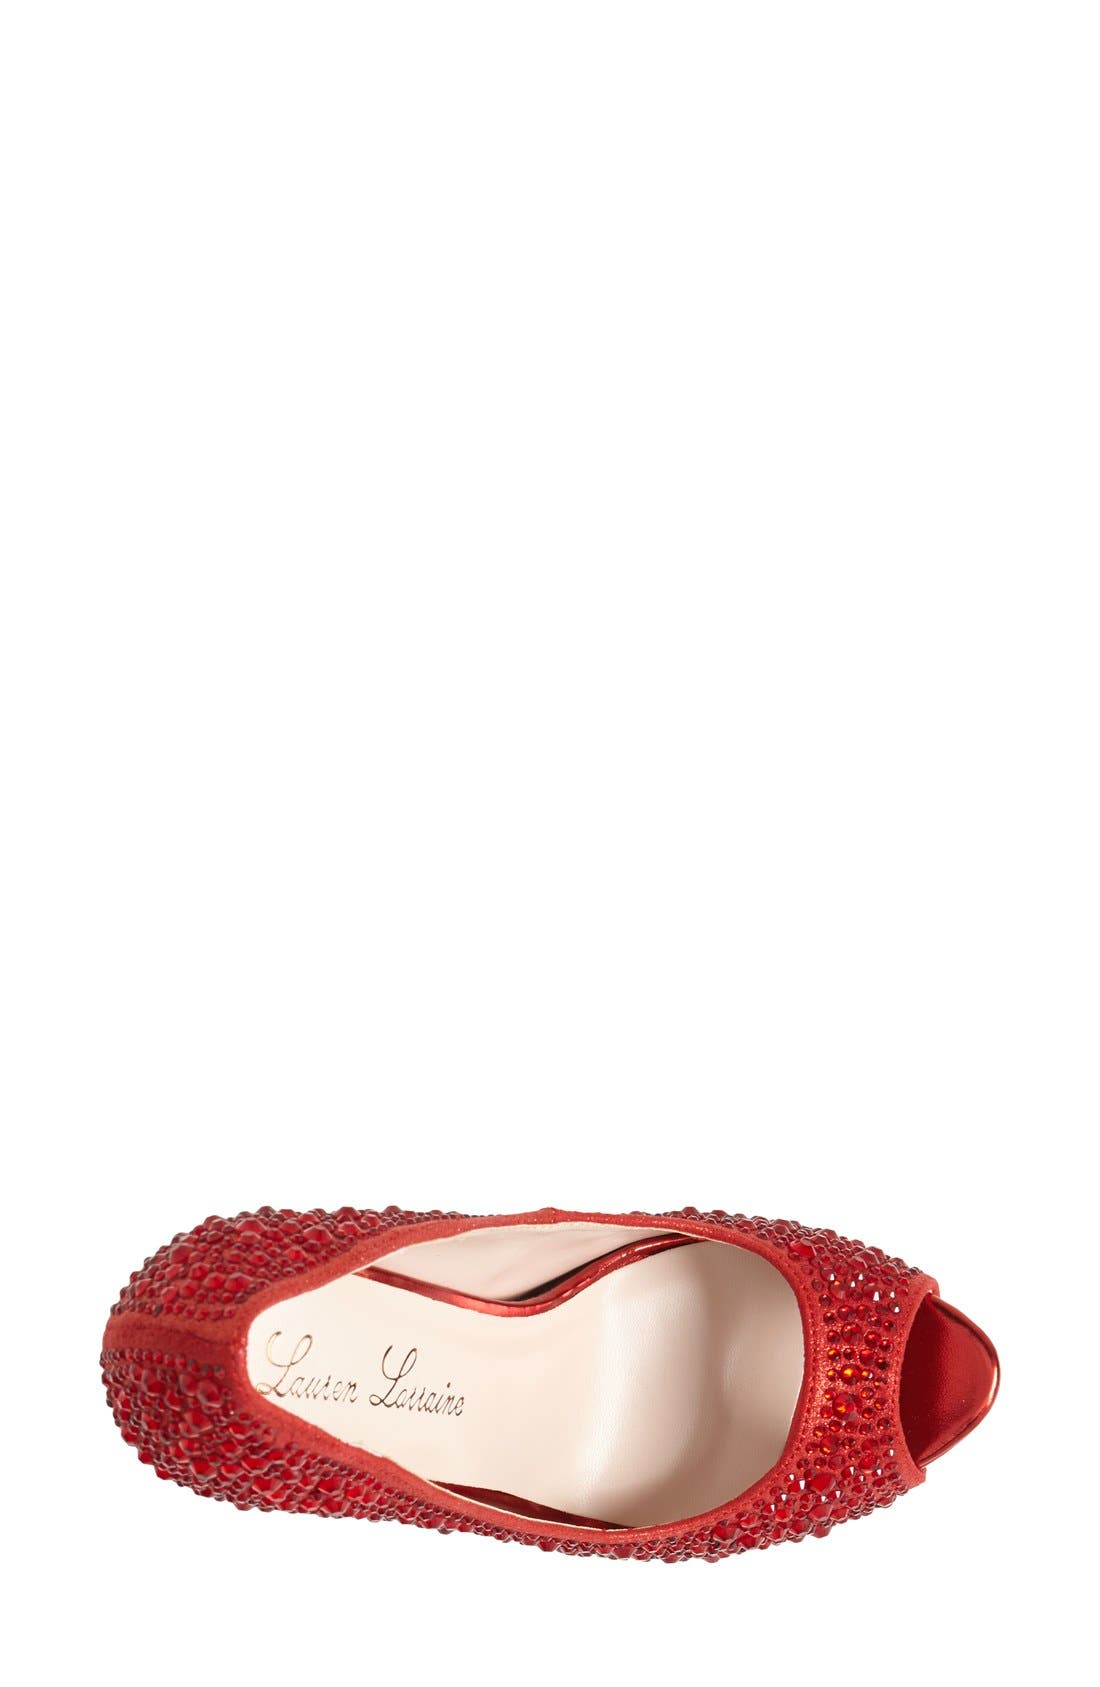 'Candy' Crystal Peep Toe Pump,                             Alternate thumbnail 2, color,                             RED